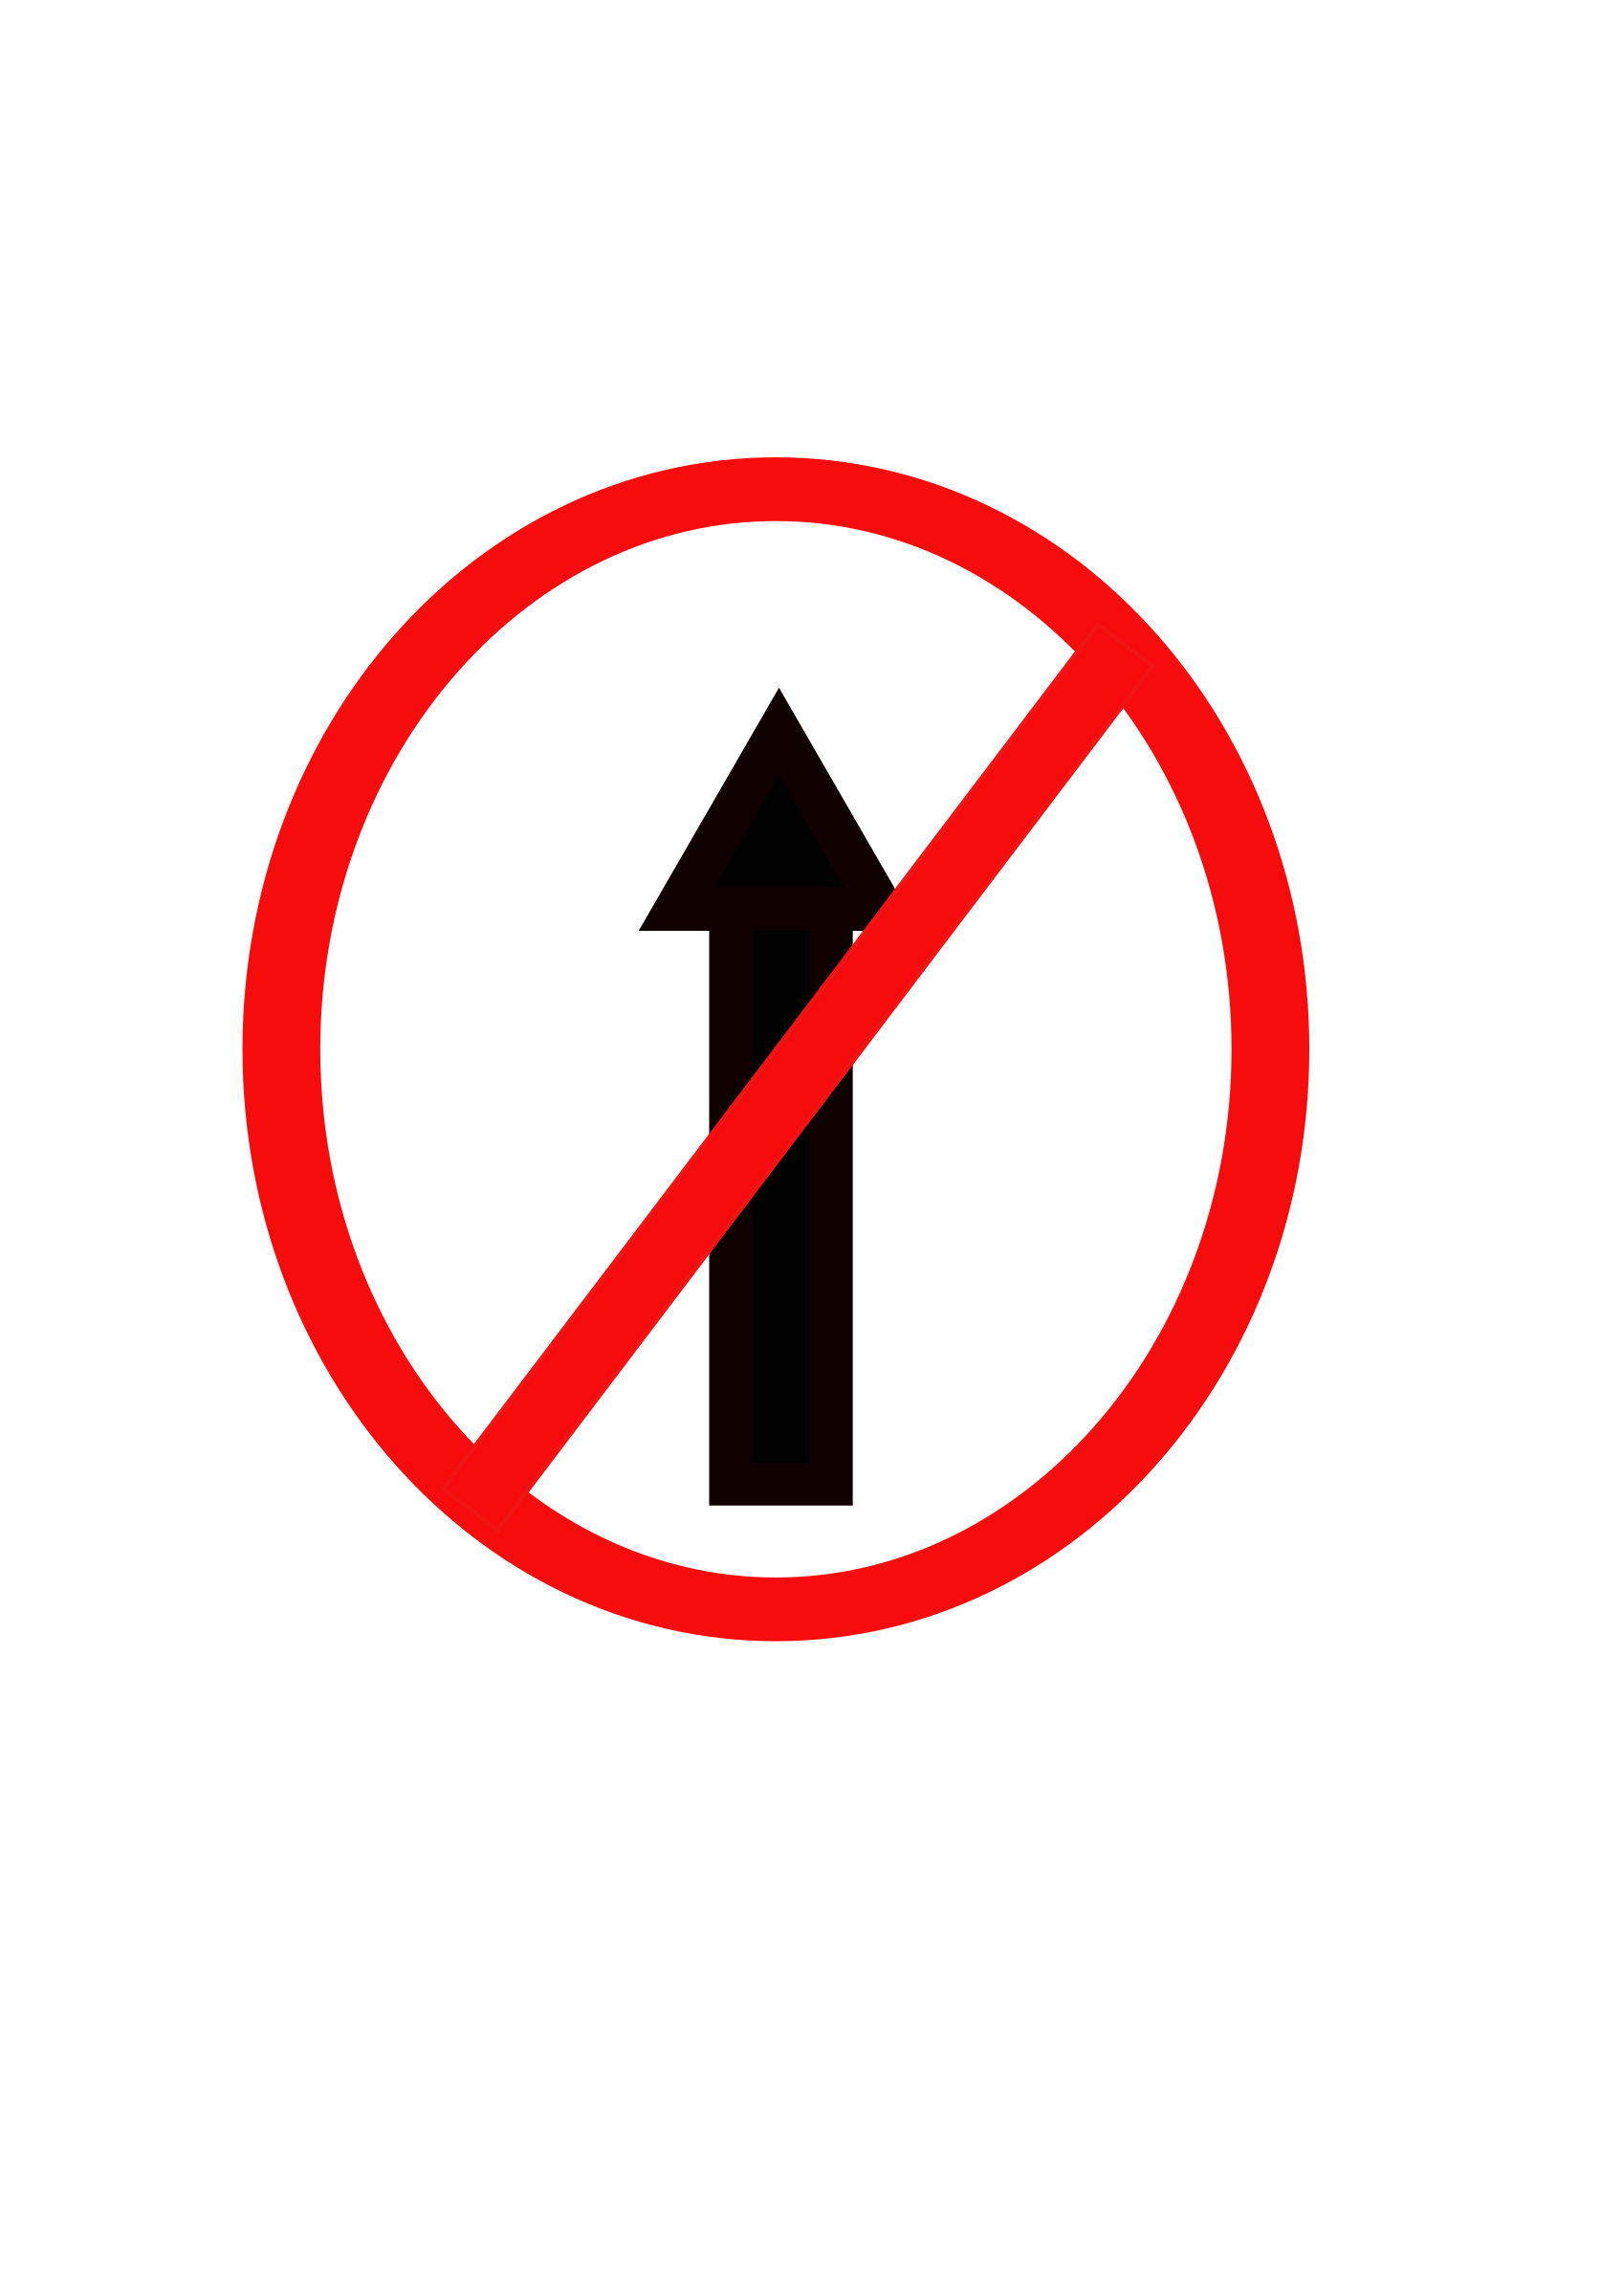 Traffic clipart indian No sign entry entry road